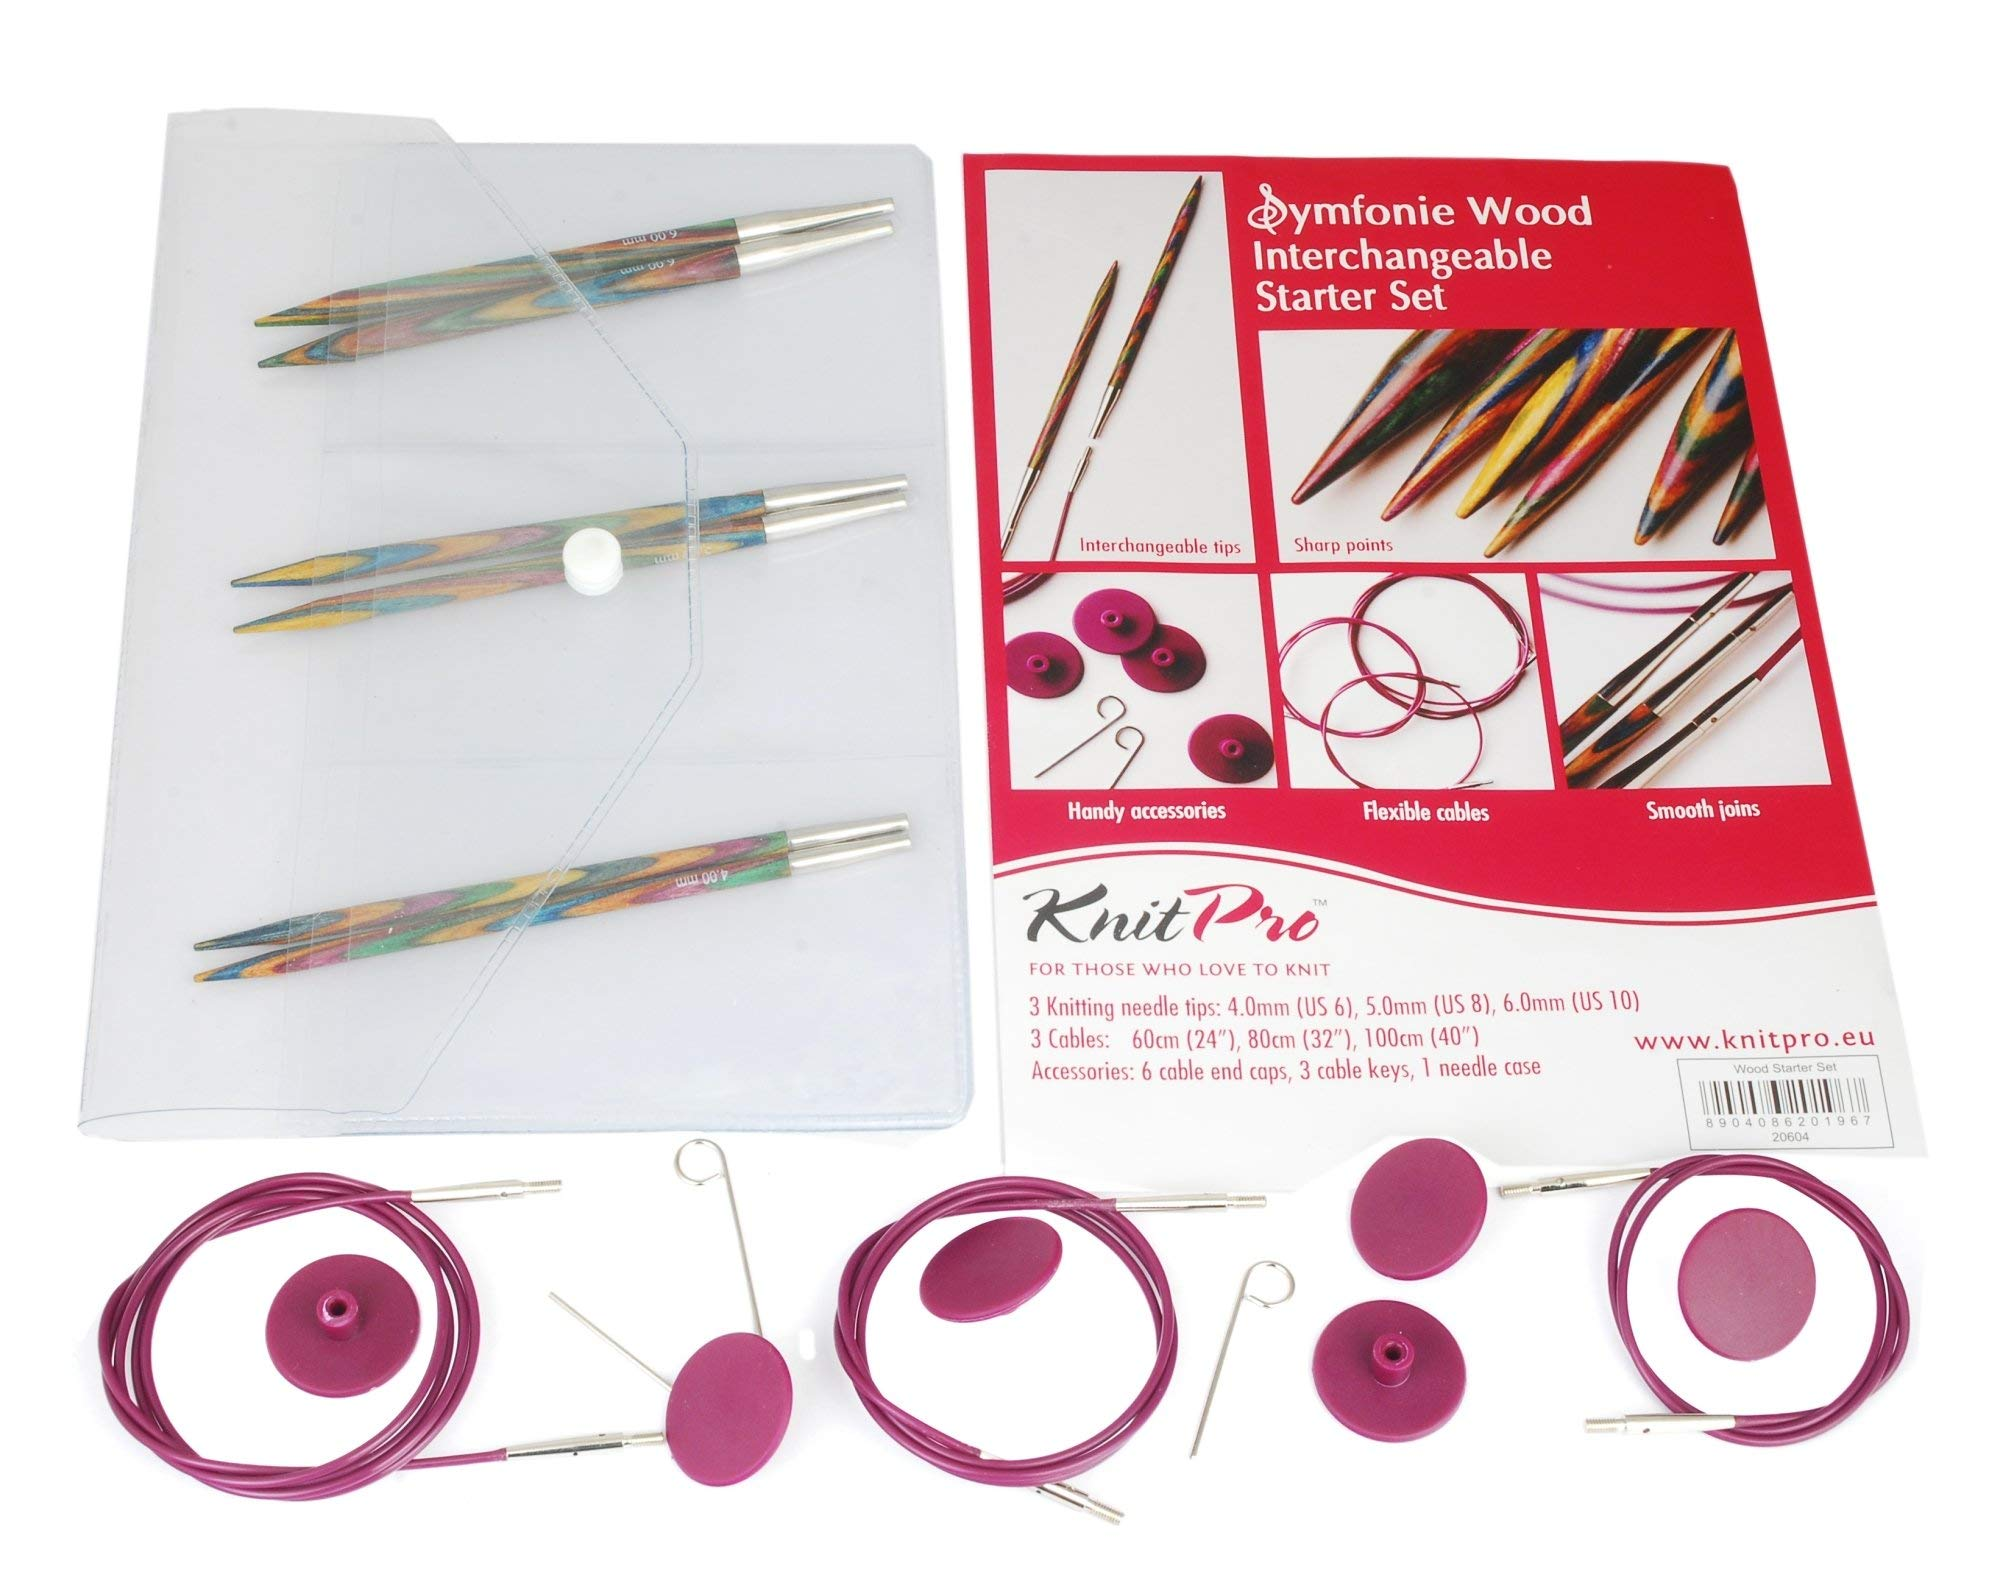 Knit Pro Symfonie Wood Circular Needle Interchangeable Starter Set